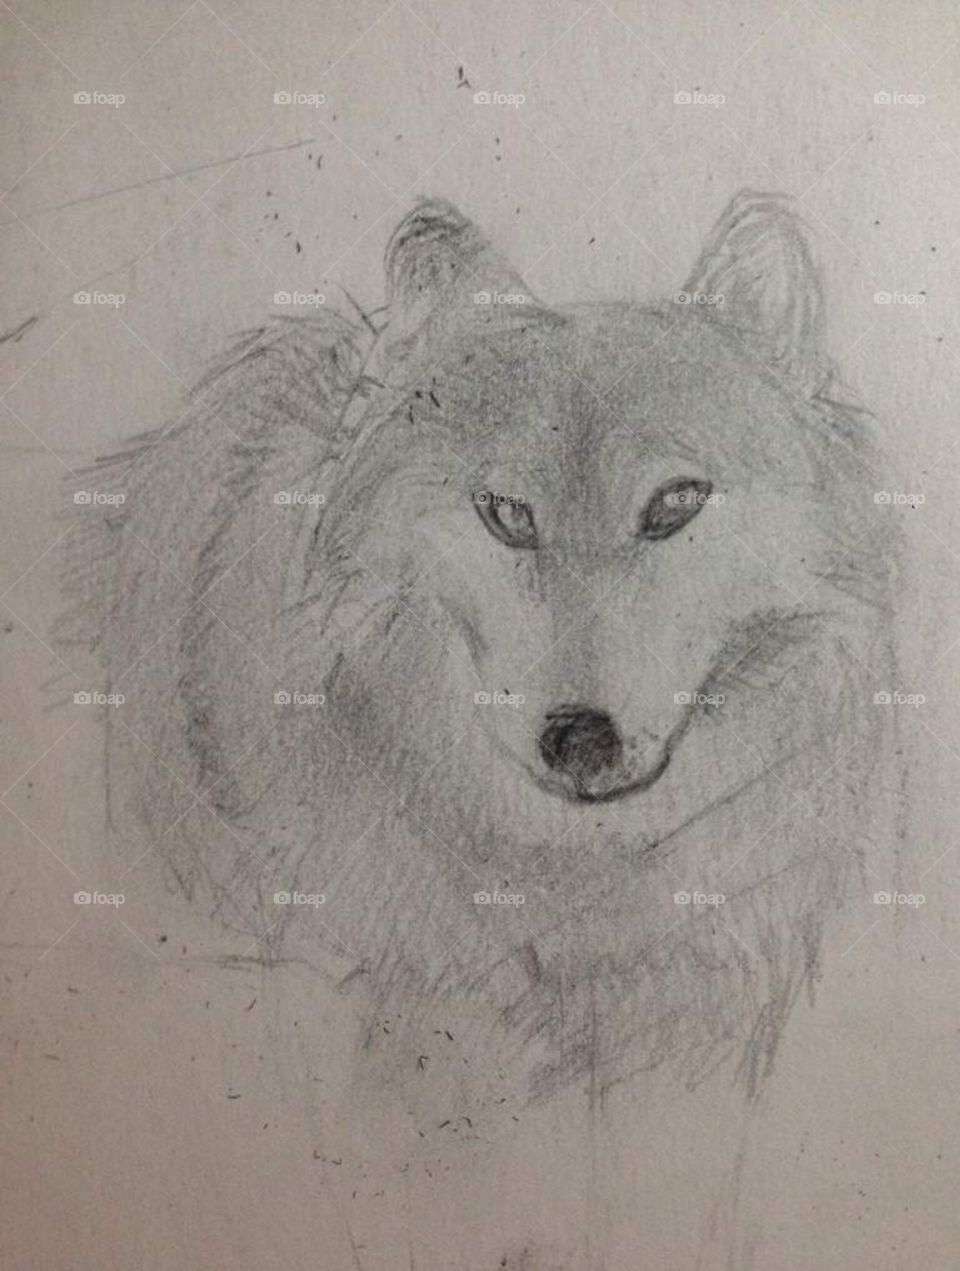 A wolf portrait drawn in pencil on white sketch paper